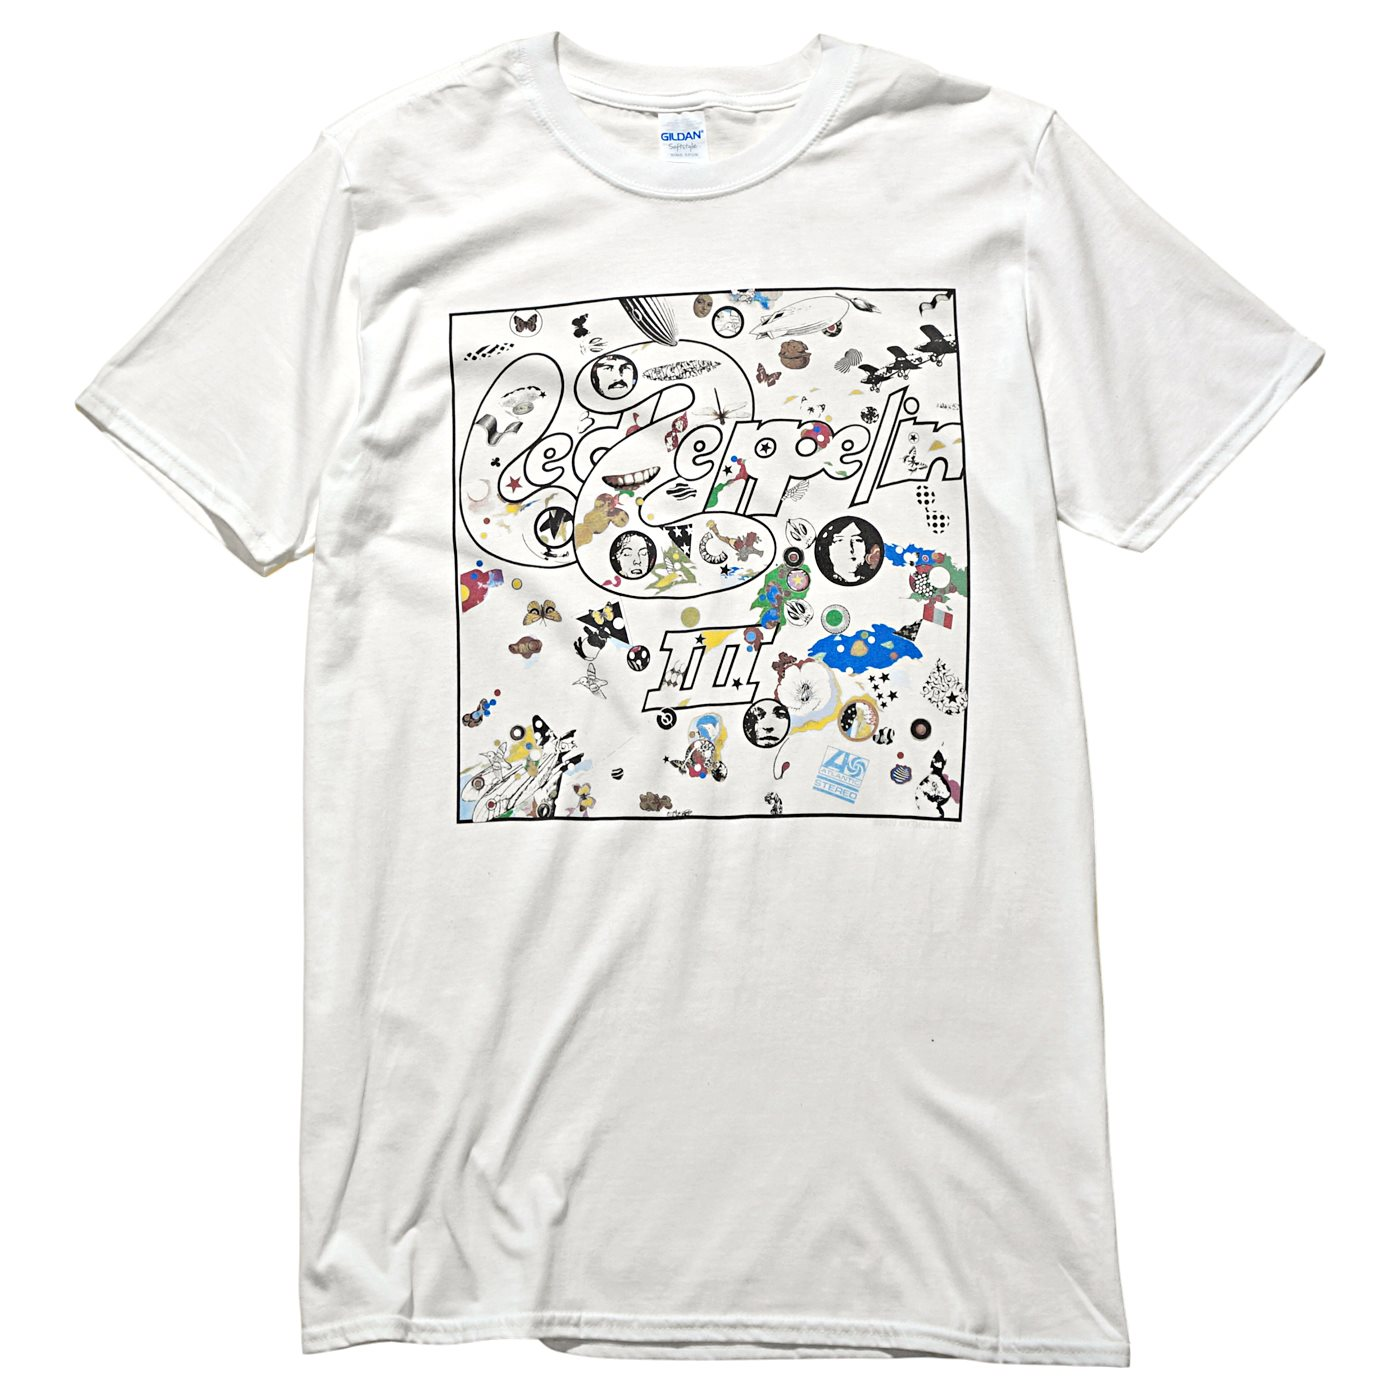 LED ZEPPELIN Tシャツ III Album-White